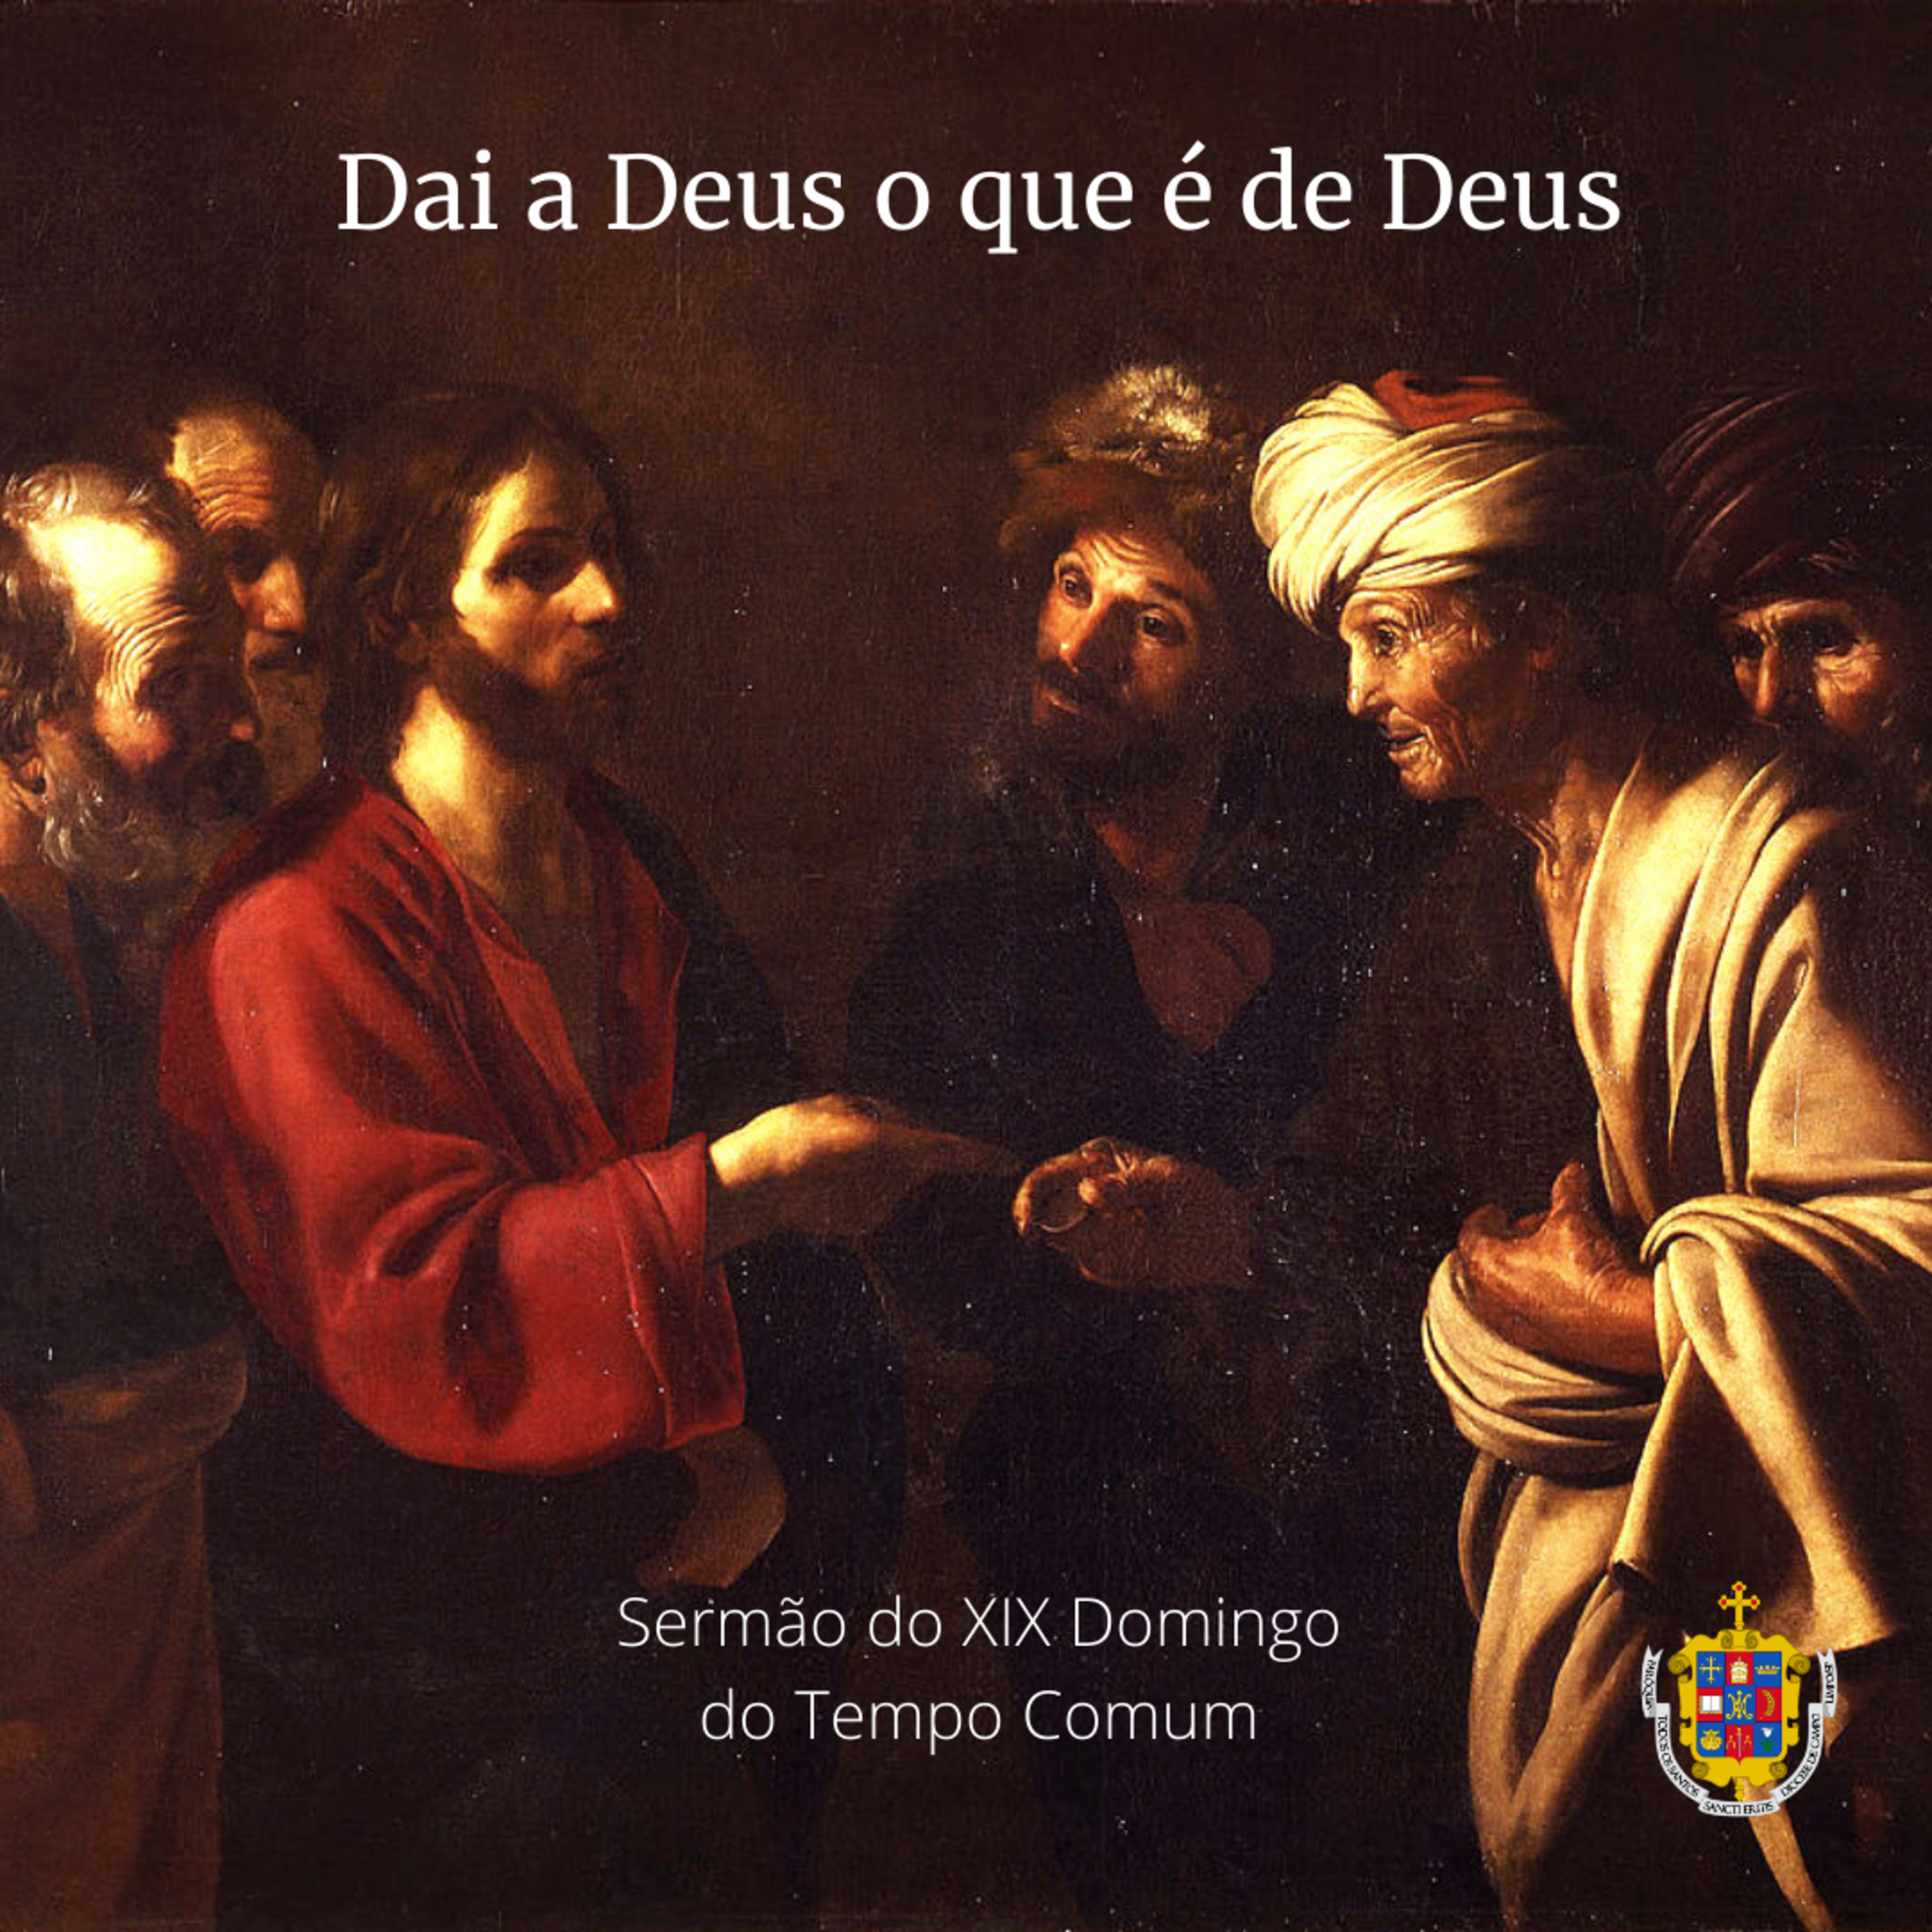 1-174. Dai a Deus o que é de Deus - Sermão do XIX Domingo do Tempo Comum.